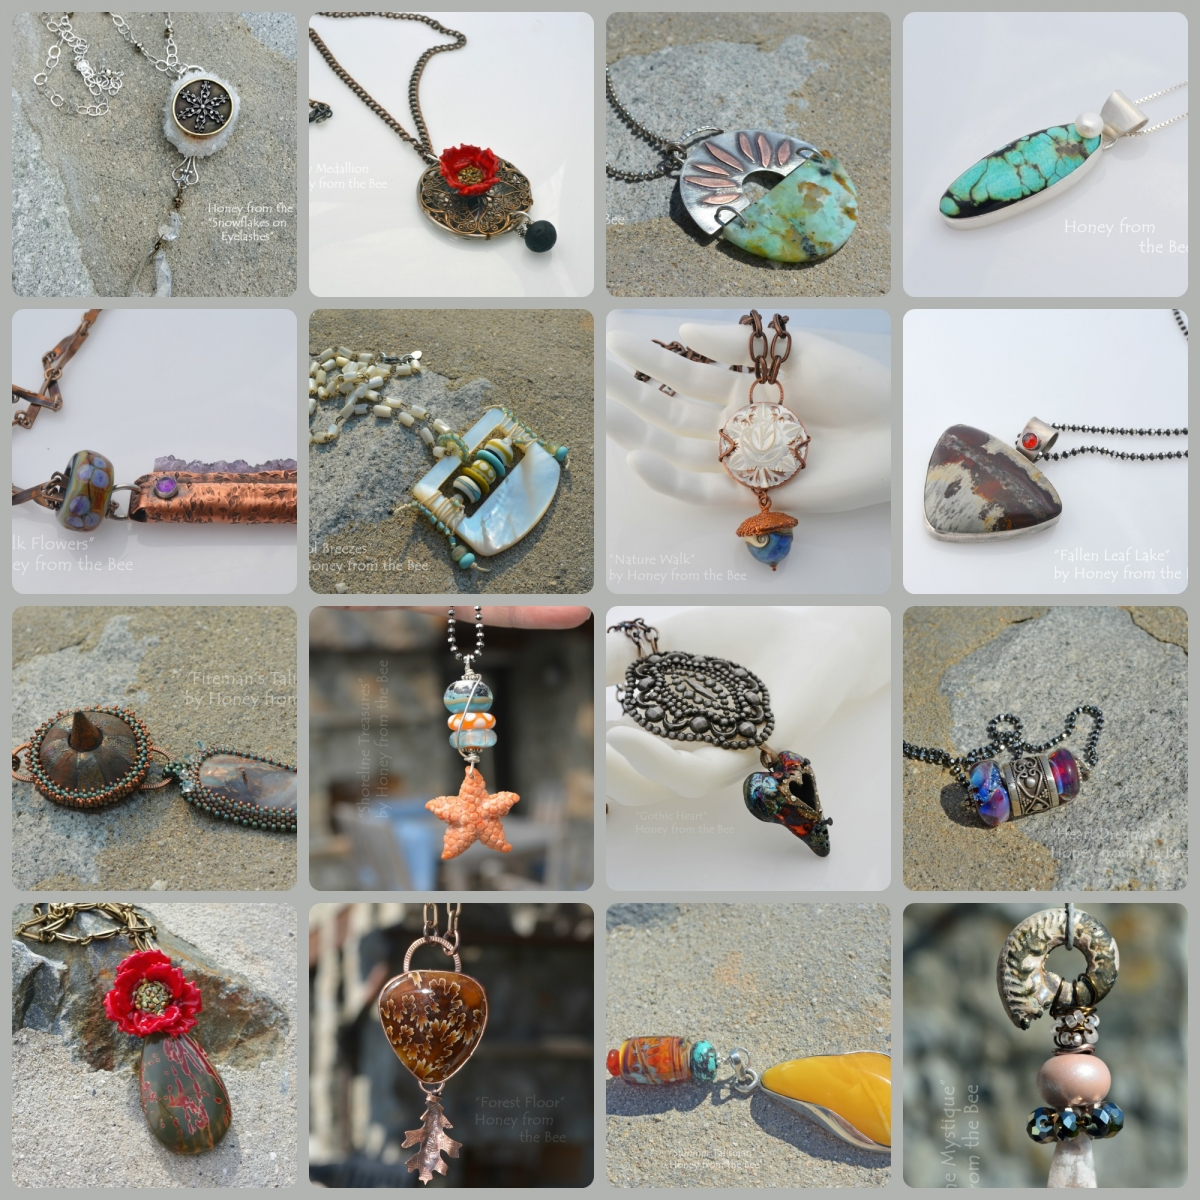 Artisan Pendants by Honey from the Bee